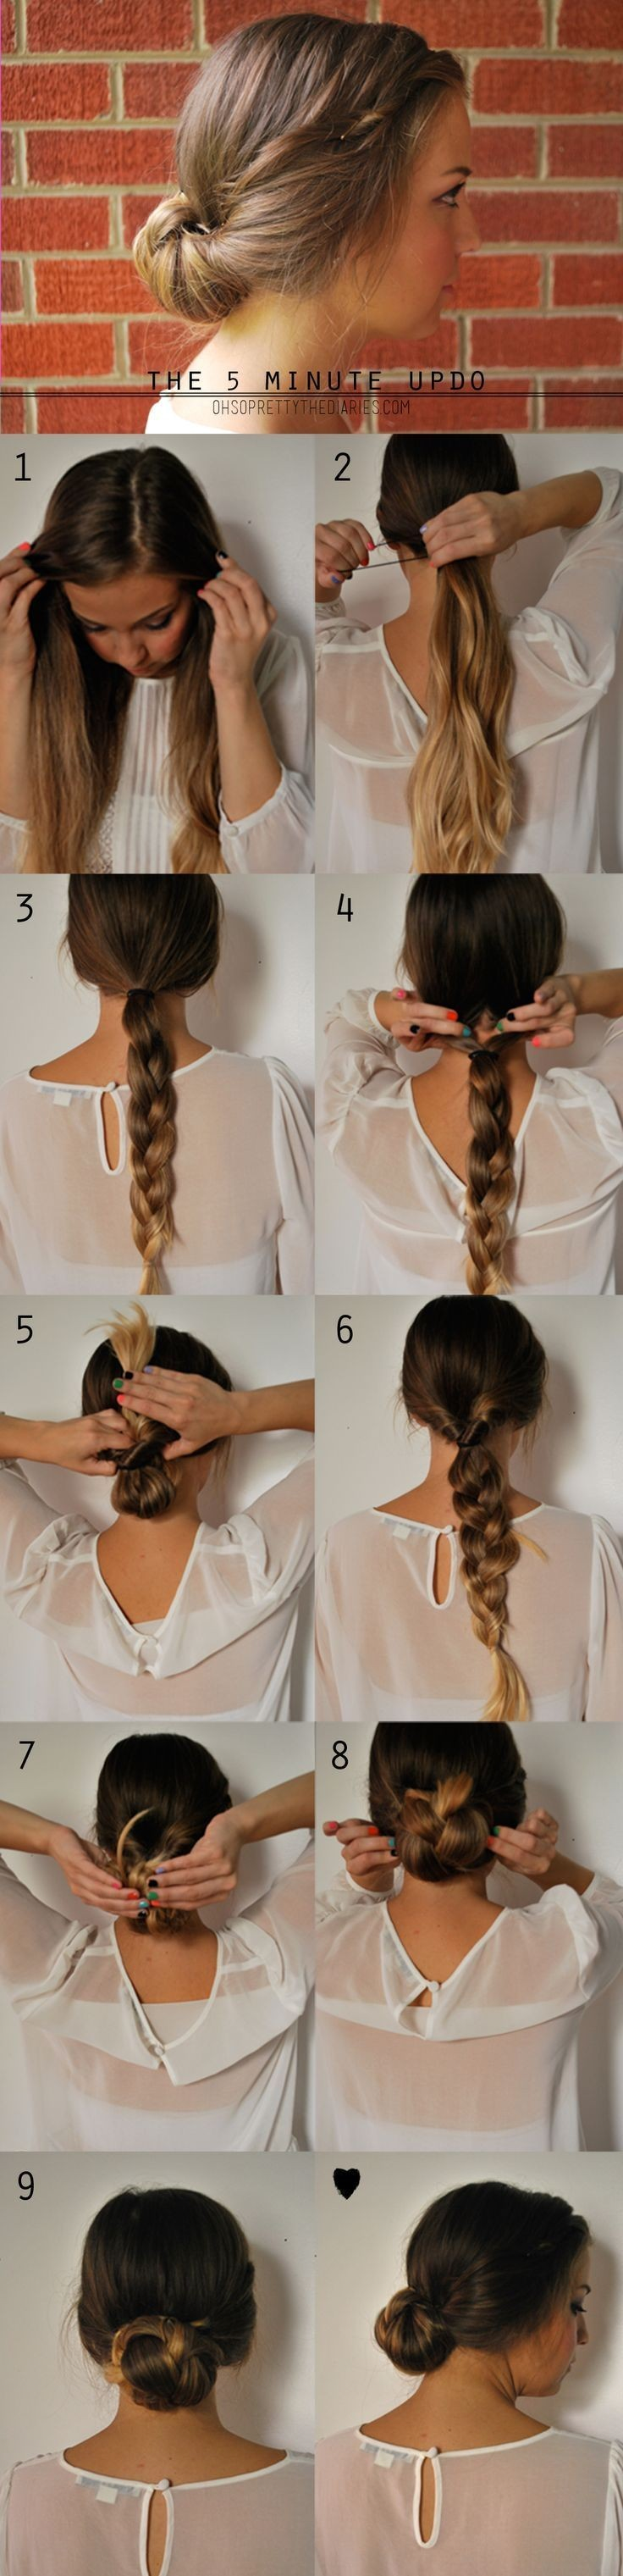 5 Minute Updo Hairstyle for Long Hair